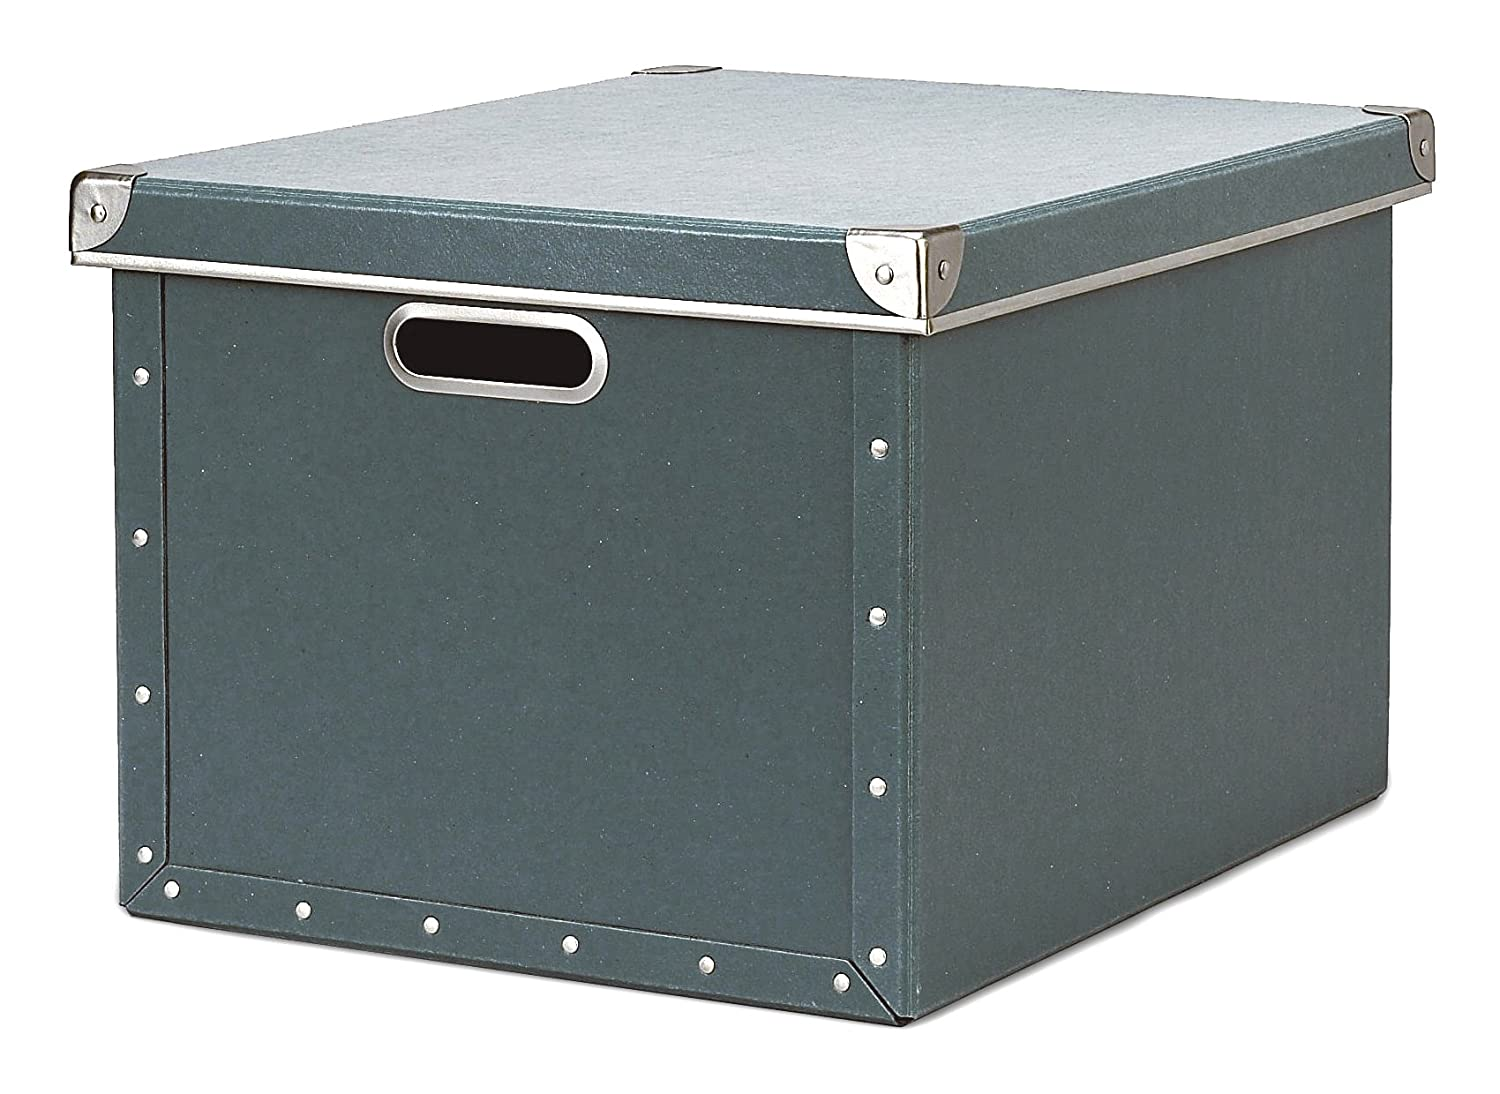 cargo Naturals Dual File Box 10-3//4 by 15-1//2 by 12-1//2-Inch resource international inc 806 Red Spice